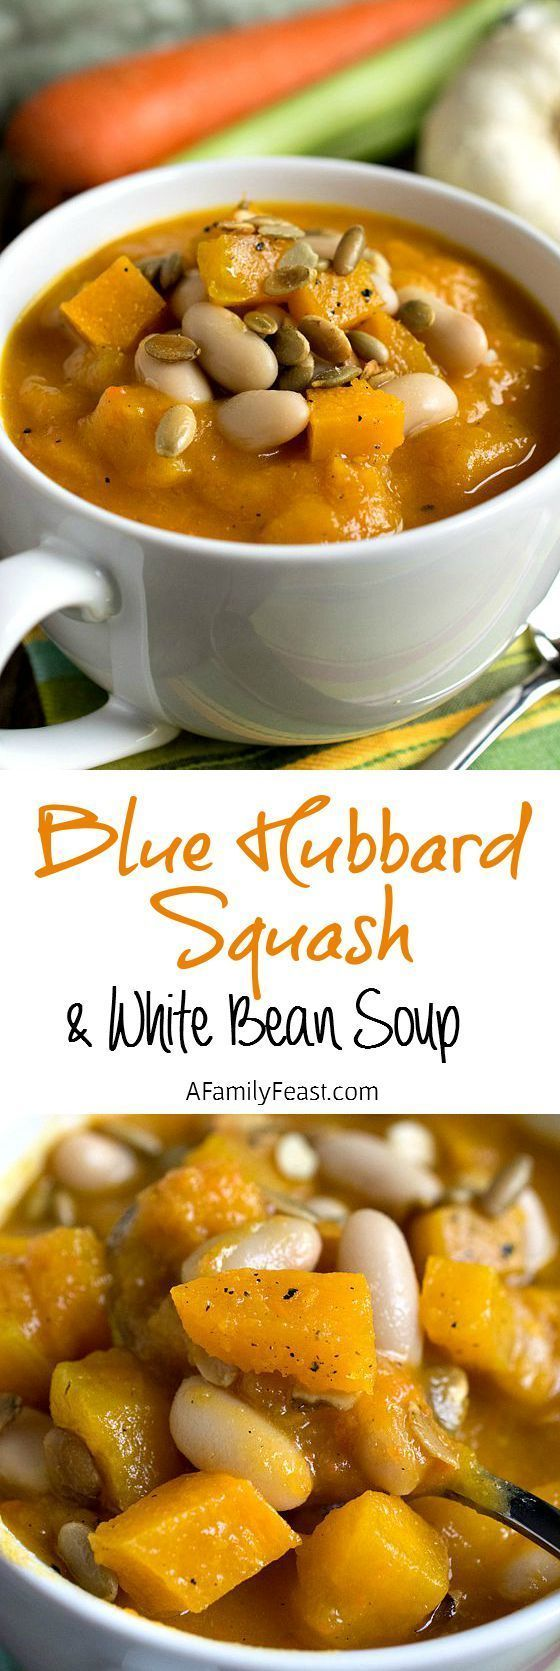 Blue Hubbard Squash and White Bean Soup - Perfect cold-weather comfort food. This soup is delicious!